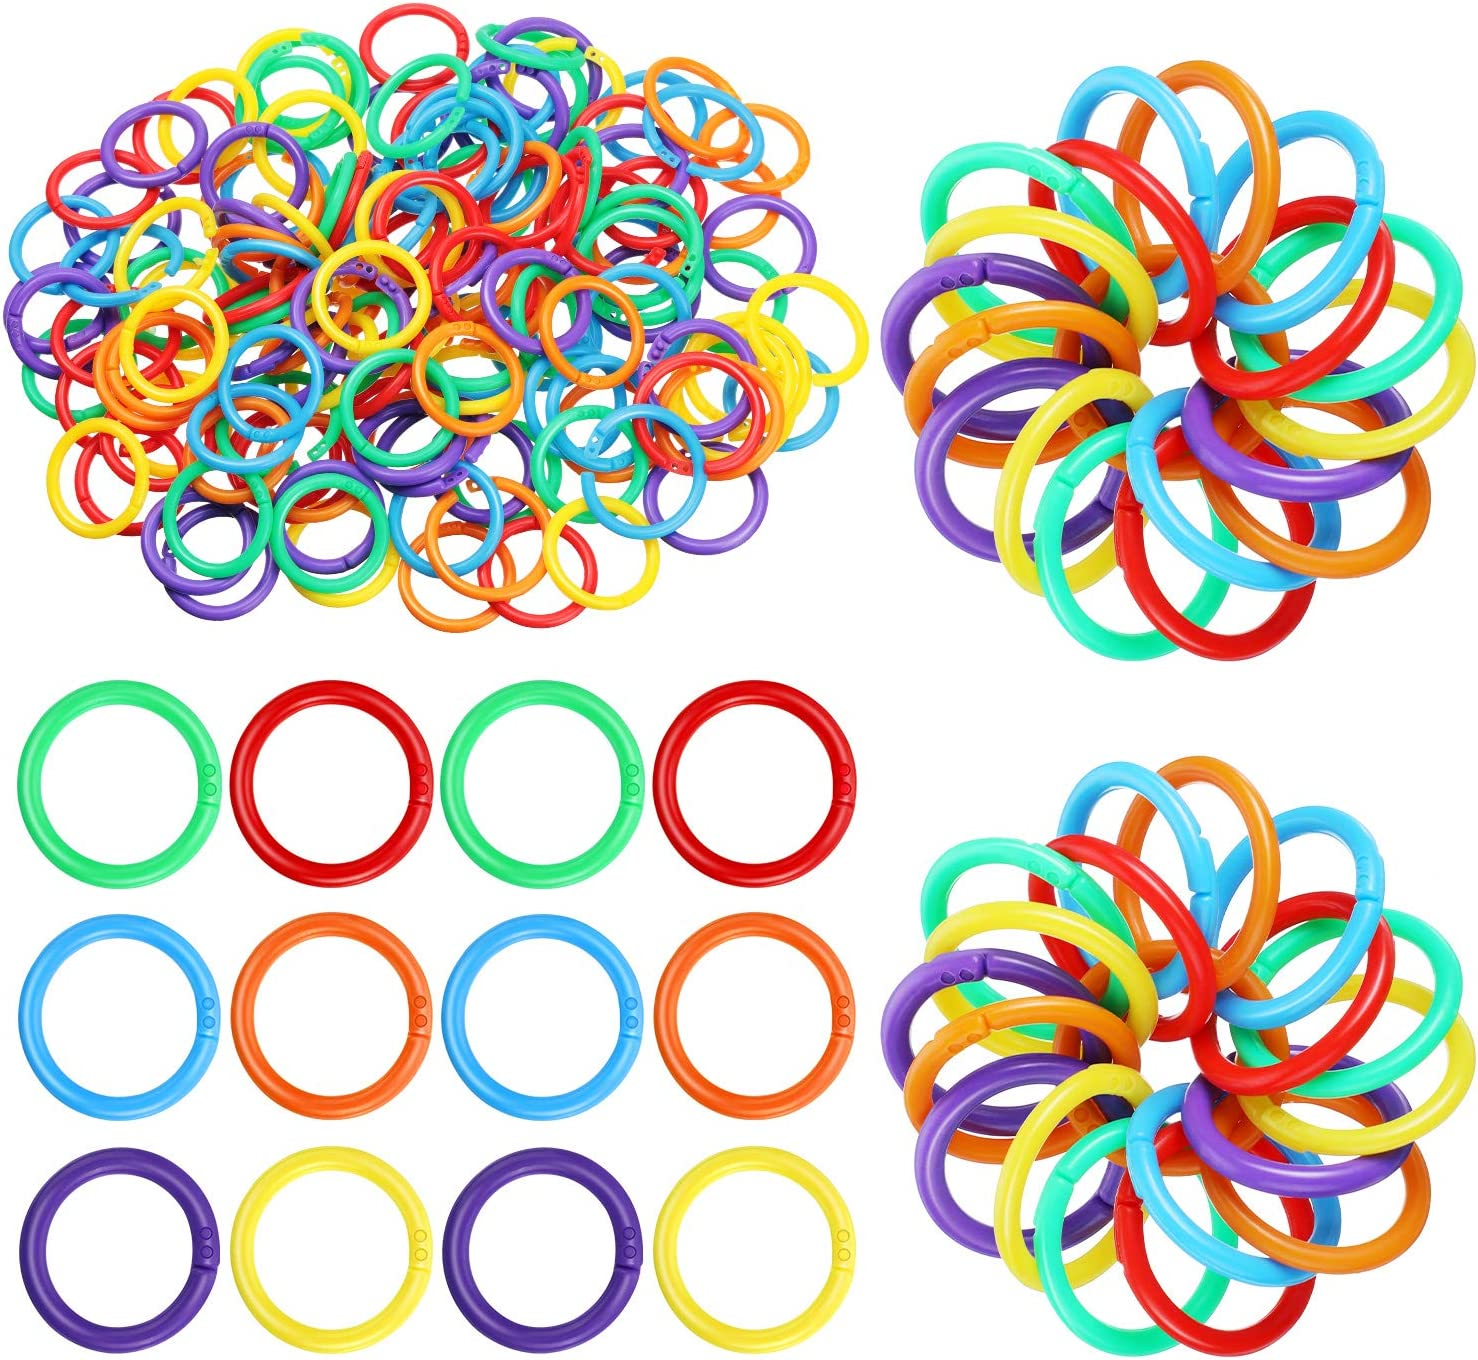 144 Pieces Plastic Loose Leaf Rings Multi-Color Binder Rings Plastic Book Rings Flexible for Cards, Document Stack and Swatches Organization School Home, or Office Use, 6 Colors (20 mm)